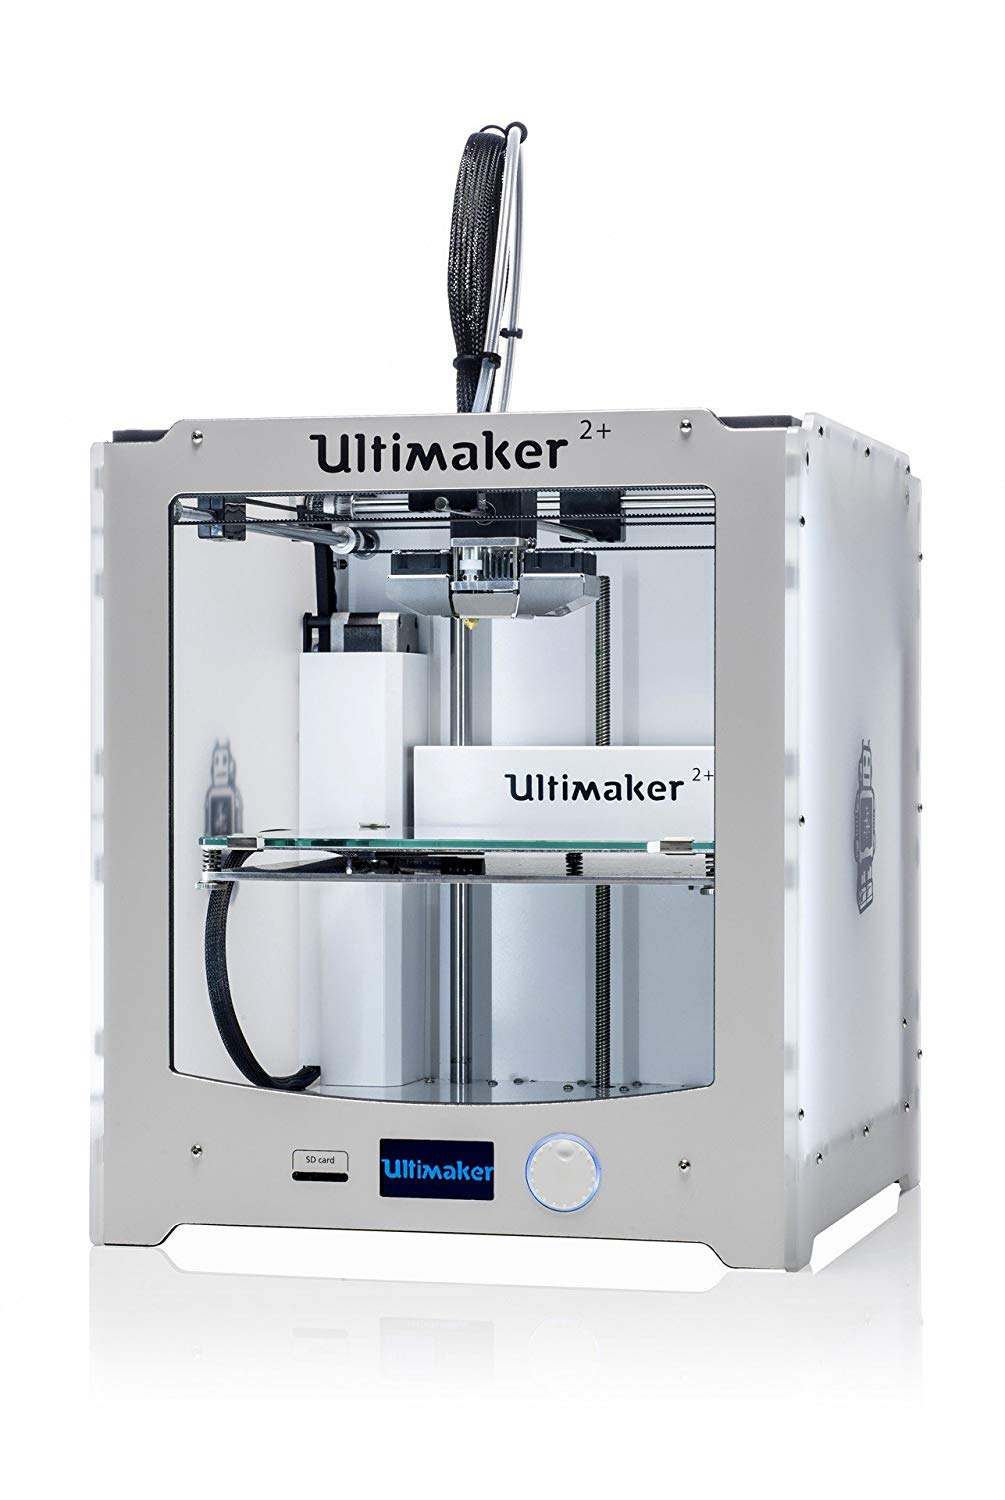 Ultimaker 2+ best 3D printers